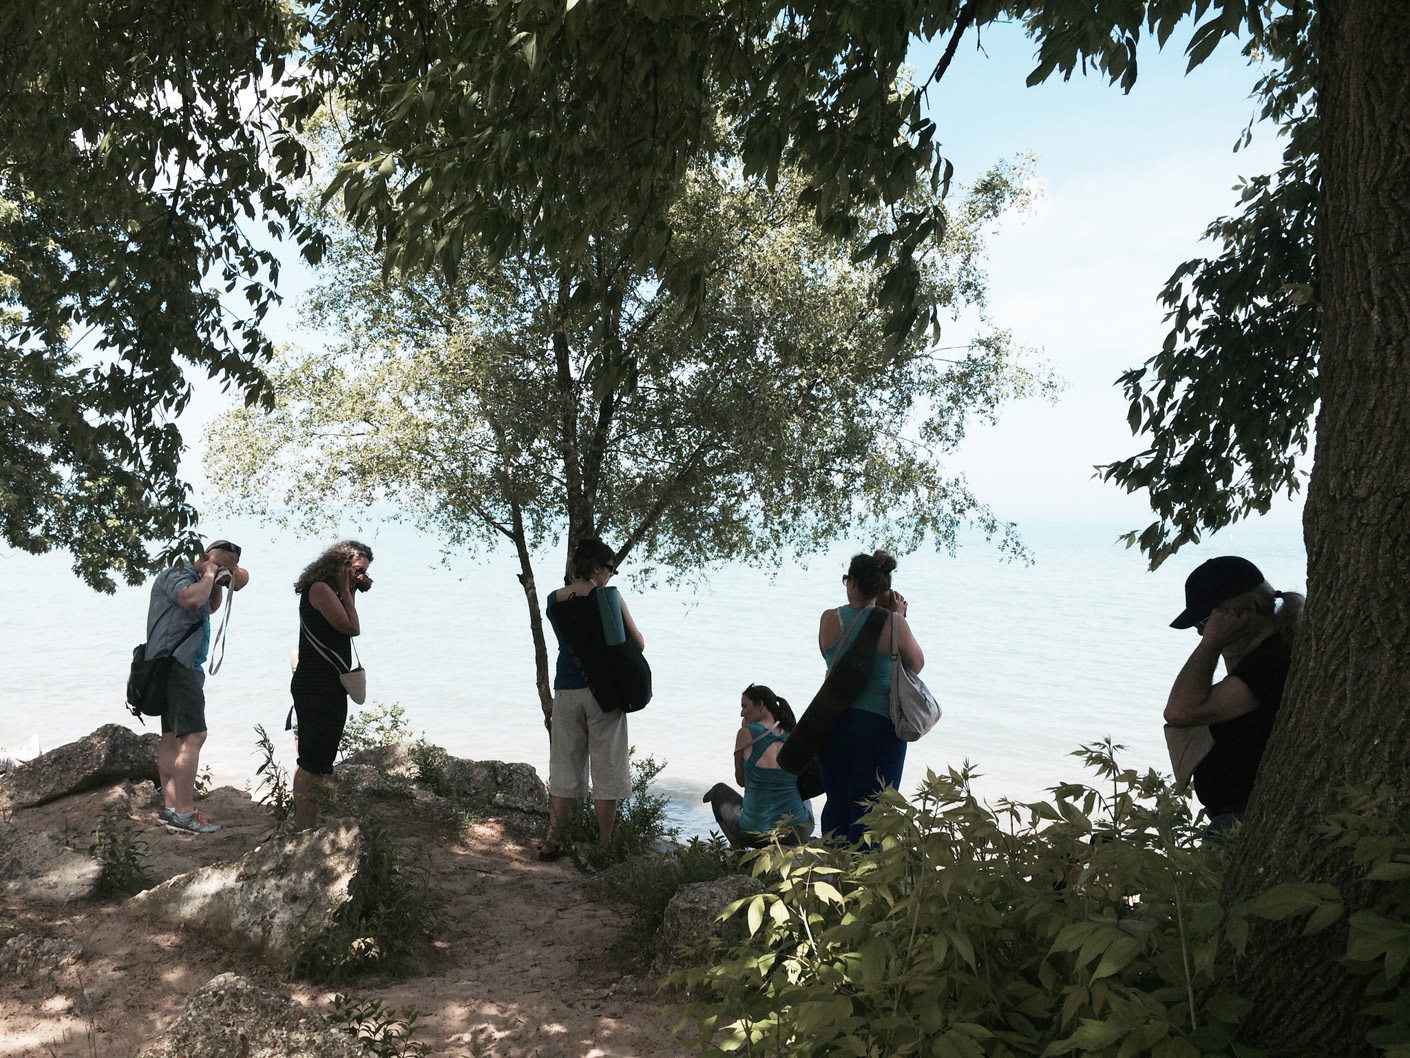 Listening to waves striking the rocks at Hartigan Beach, ten hand carved wooden burl trumpets used by participants, walk planned and led by Karen McCoy, sponsored by Alternative Spacetime 1300 (artist residency), Chicago, IL. (photo: Caro d'Offay)